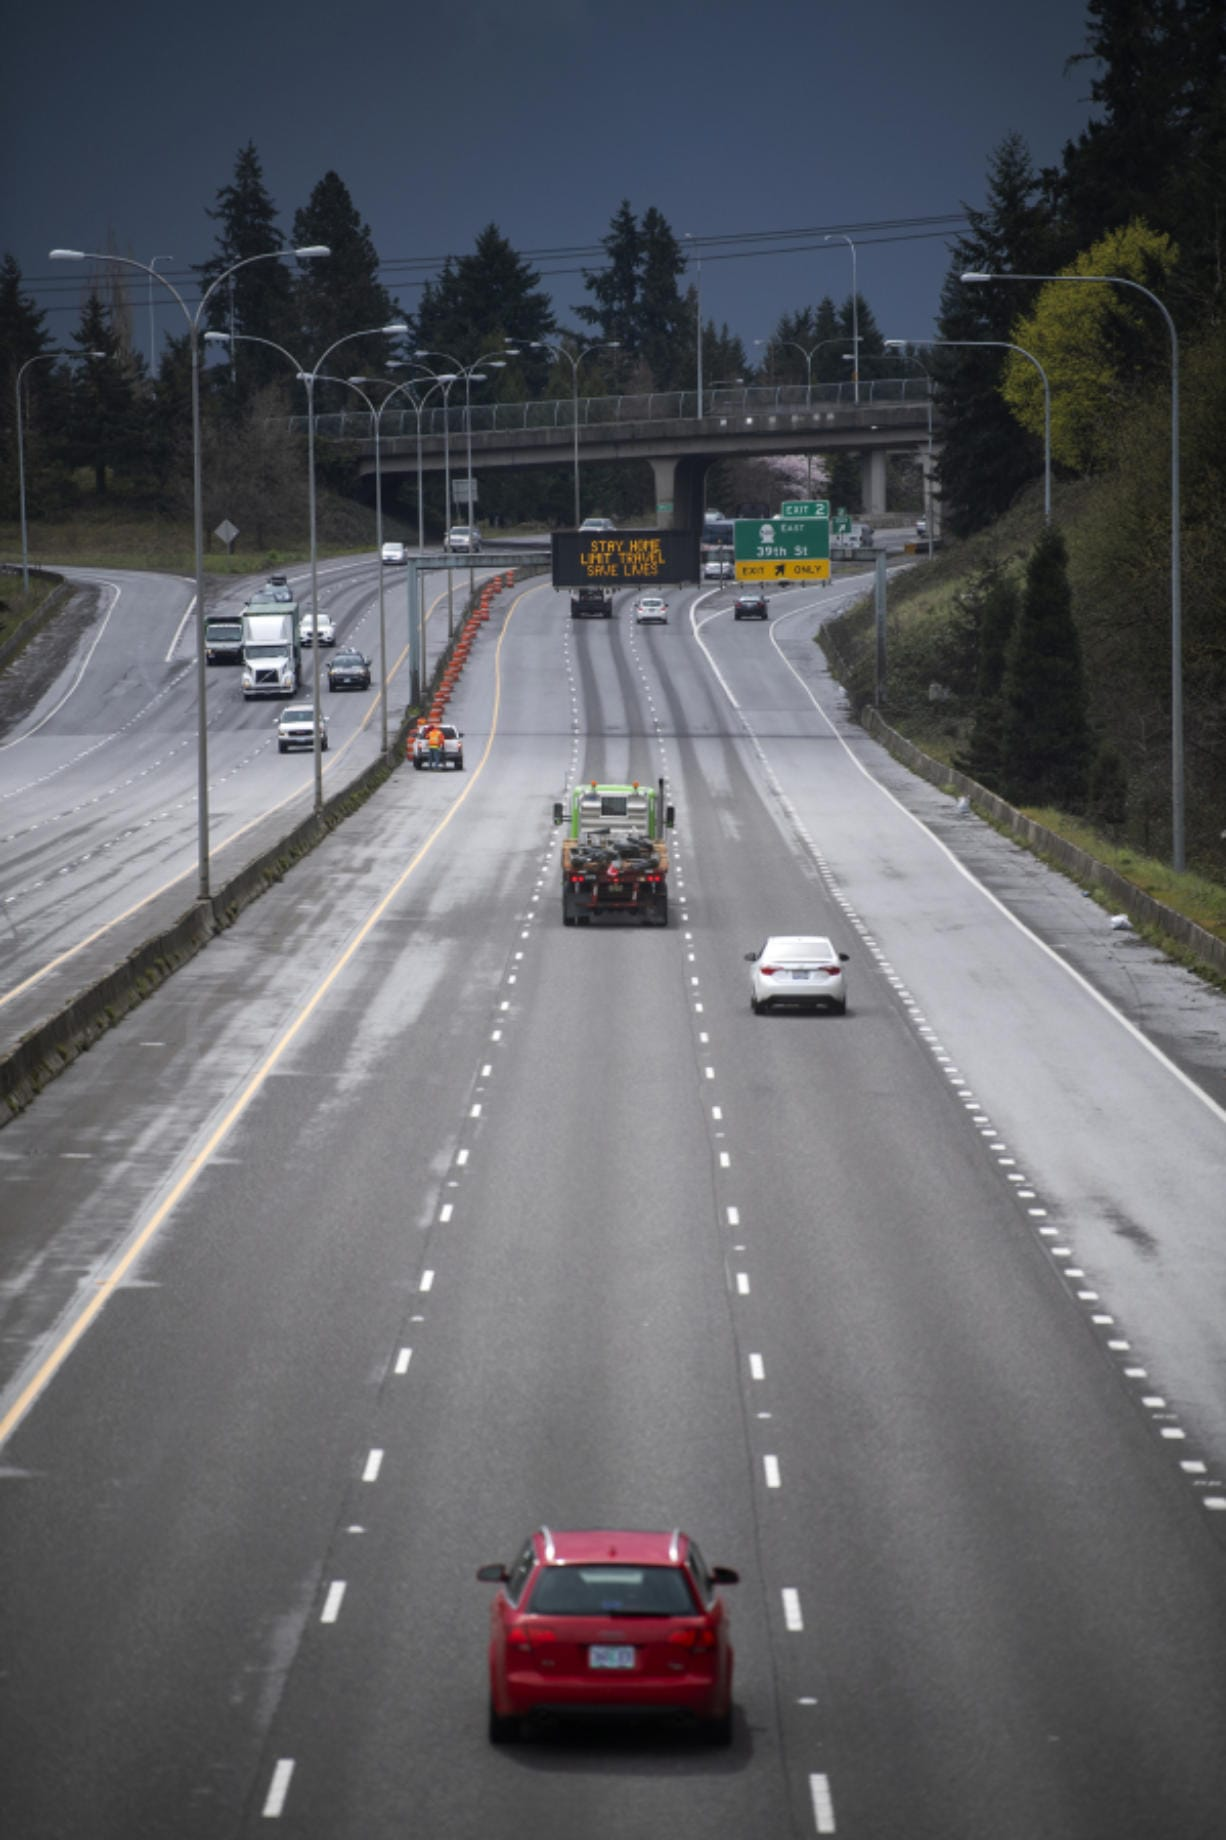 """A sparse but steady flow of vehicles moves under a sign on Interstate 5 reading """"STAY HOME, LIMIT TRAVEL, SAVE LIVES"""" in Vancouver on Tuesday. Gov. Jay Inslee issued a temporary stay-at-home order Monday evening to slow the spread of COVID-19."""